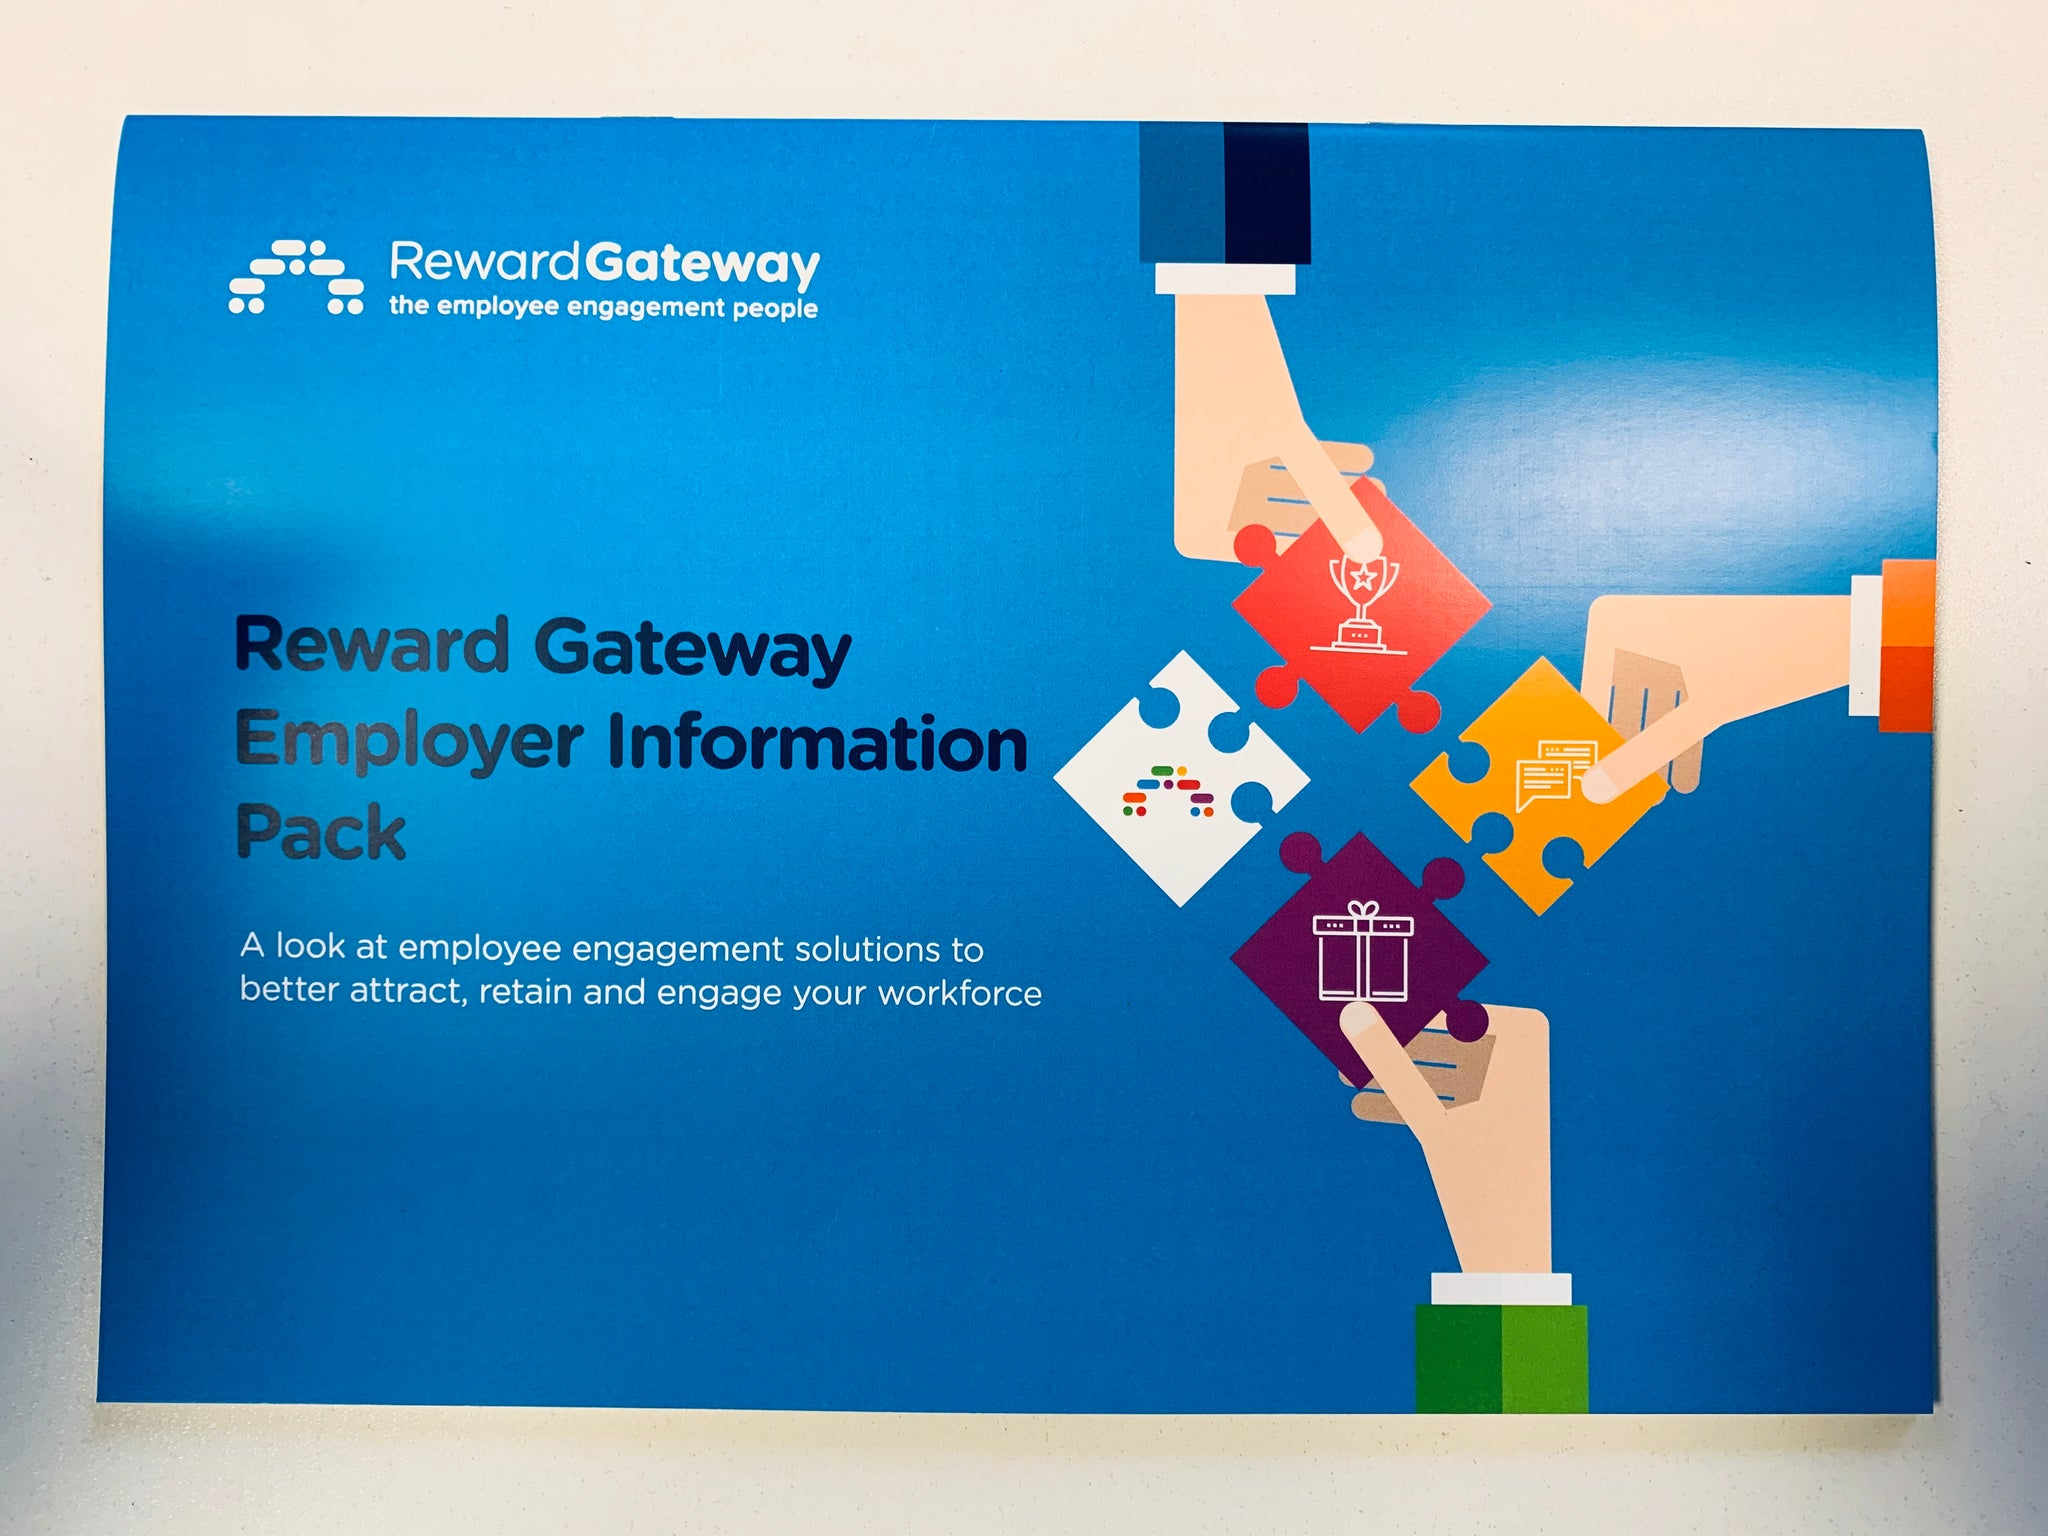 RG Employer Information Pack